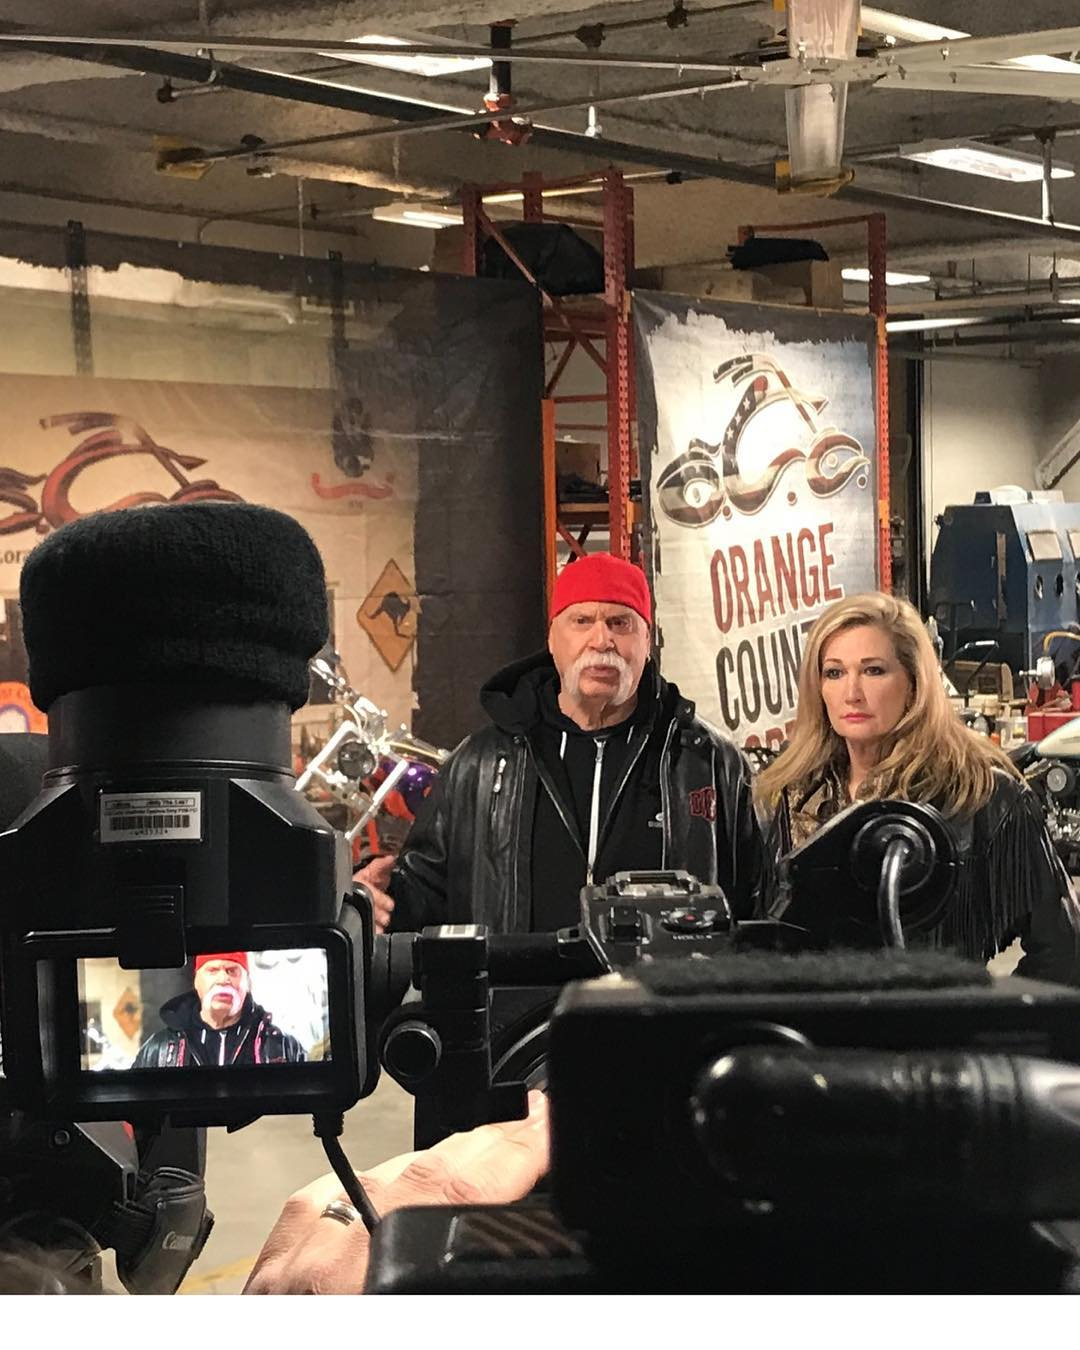 Joannie Kay and Paul Teutul Sr. at OCC in front of camera